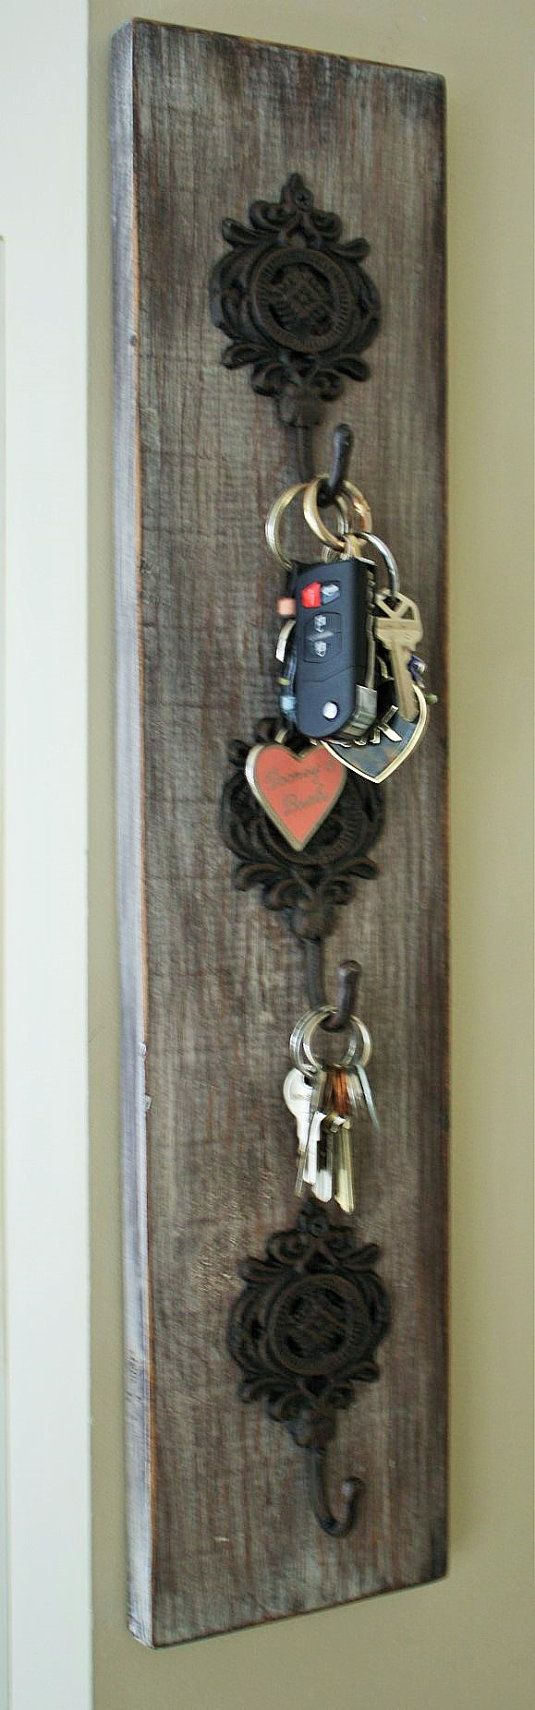 Key, Jewelry, Purse, Coats, Towel Hook Organizer - Hand made reclaimed barn